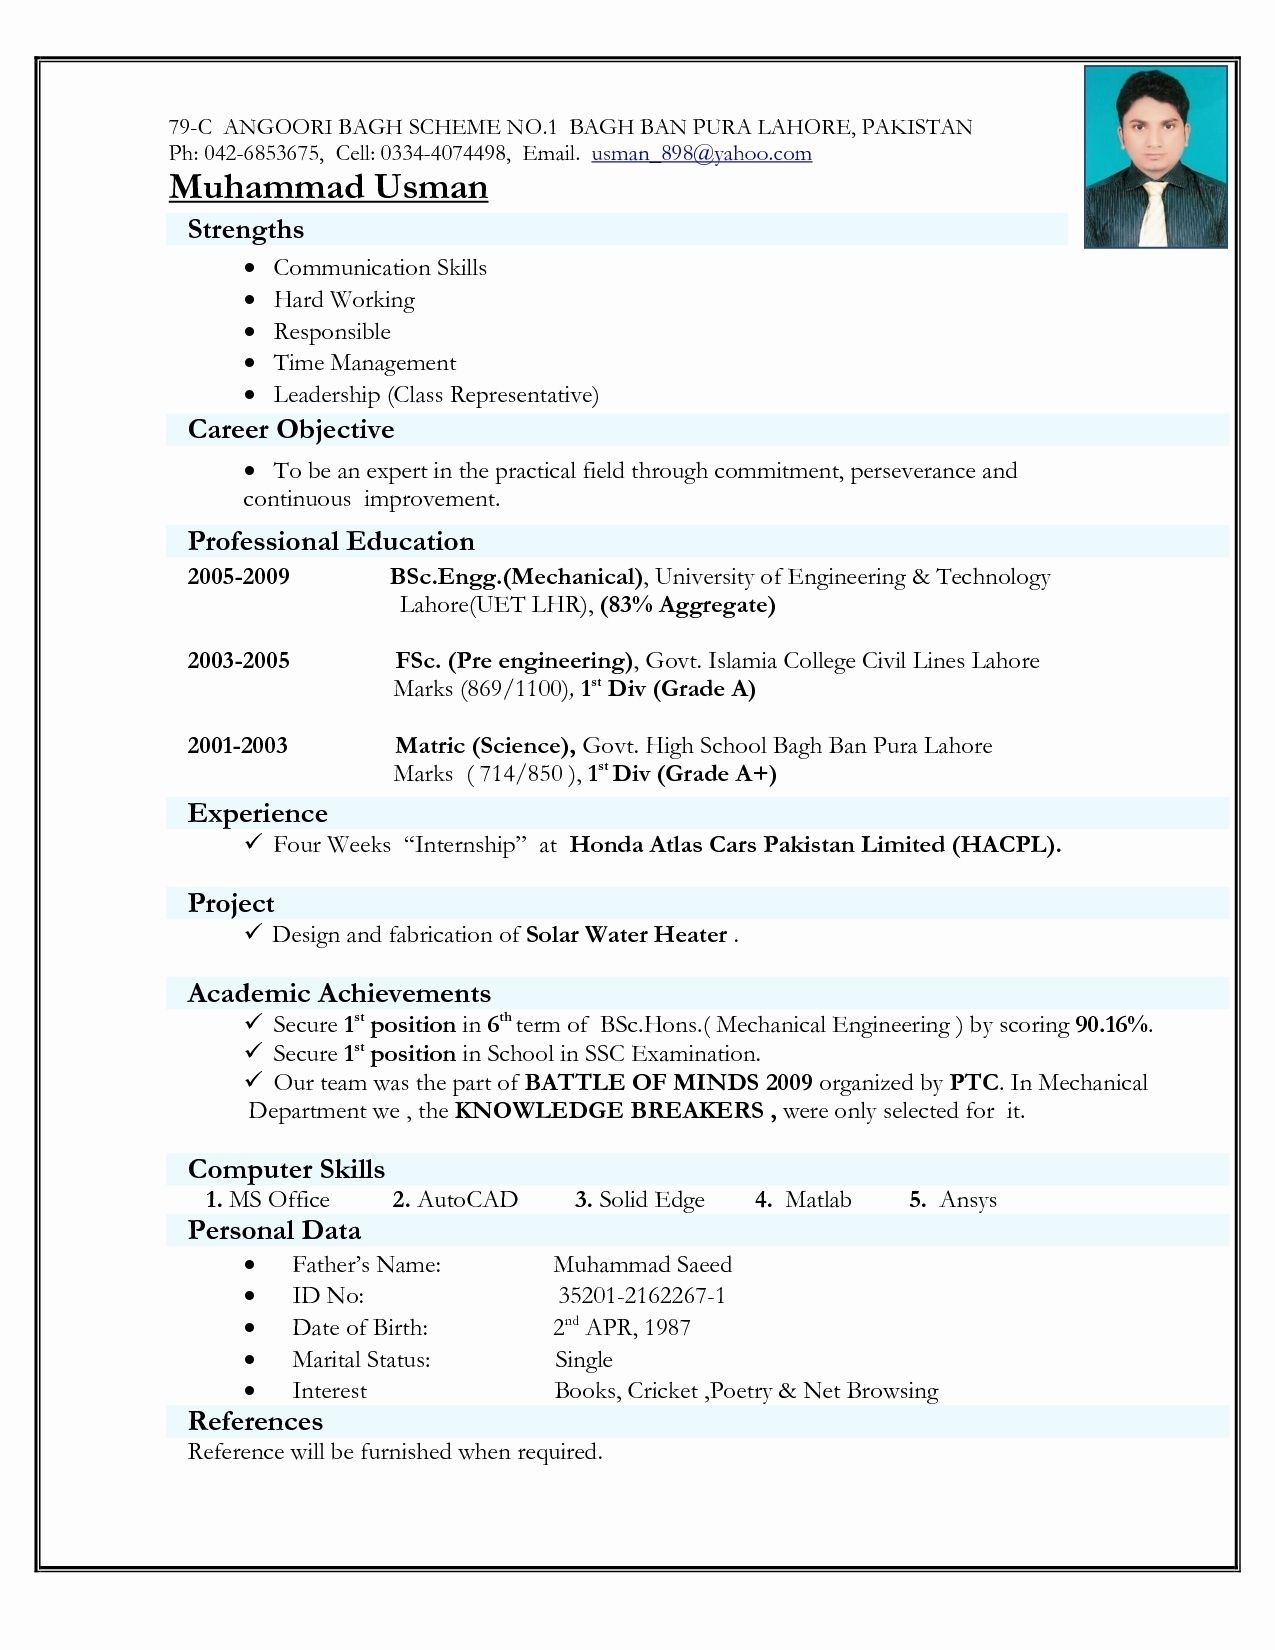 Resume Pdf Download For Freshers In India